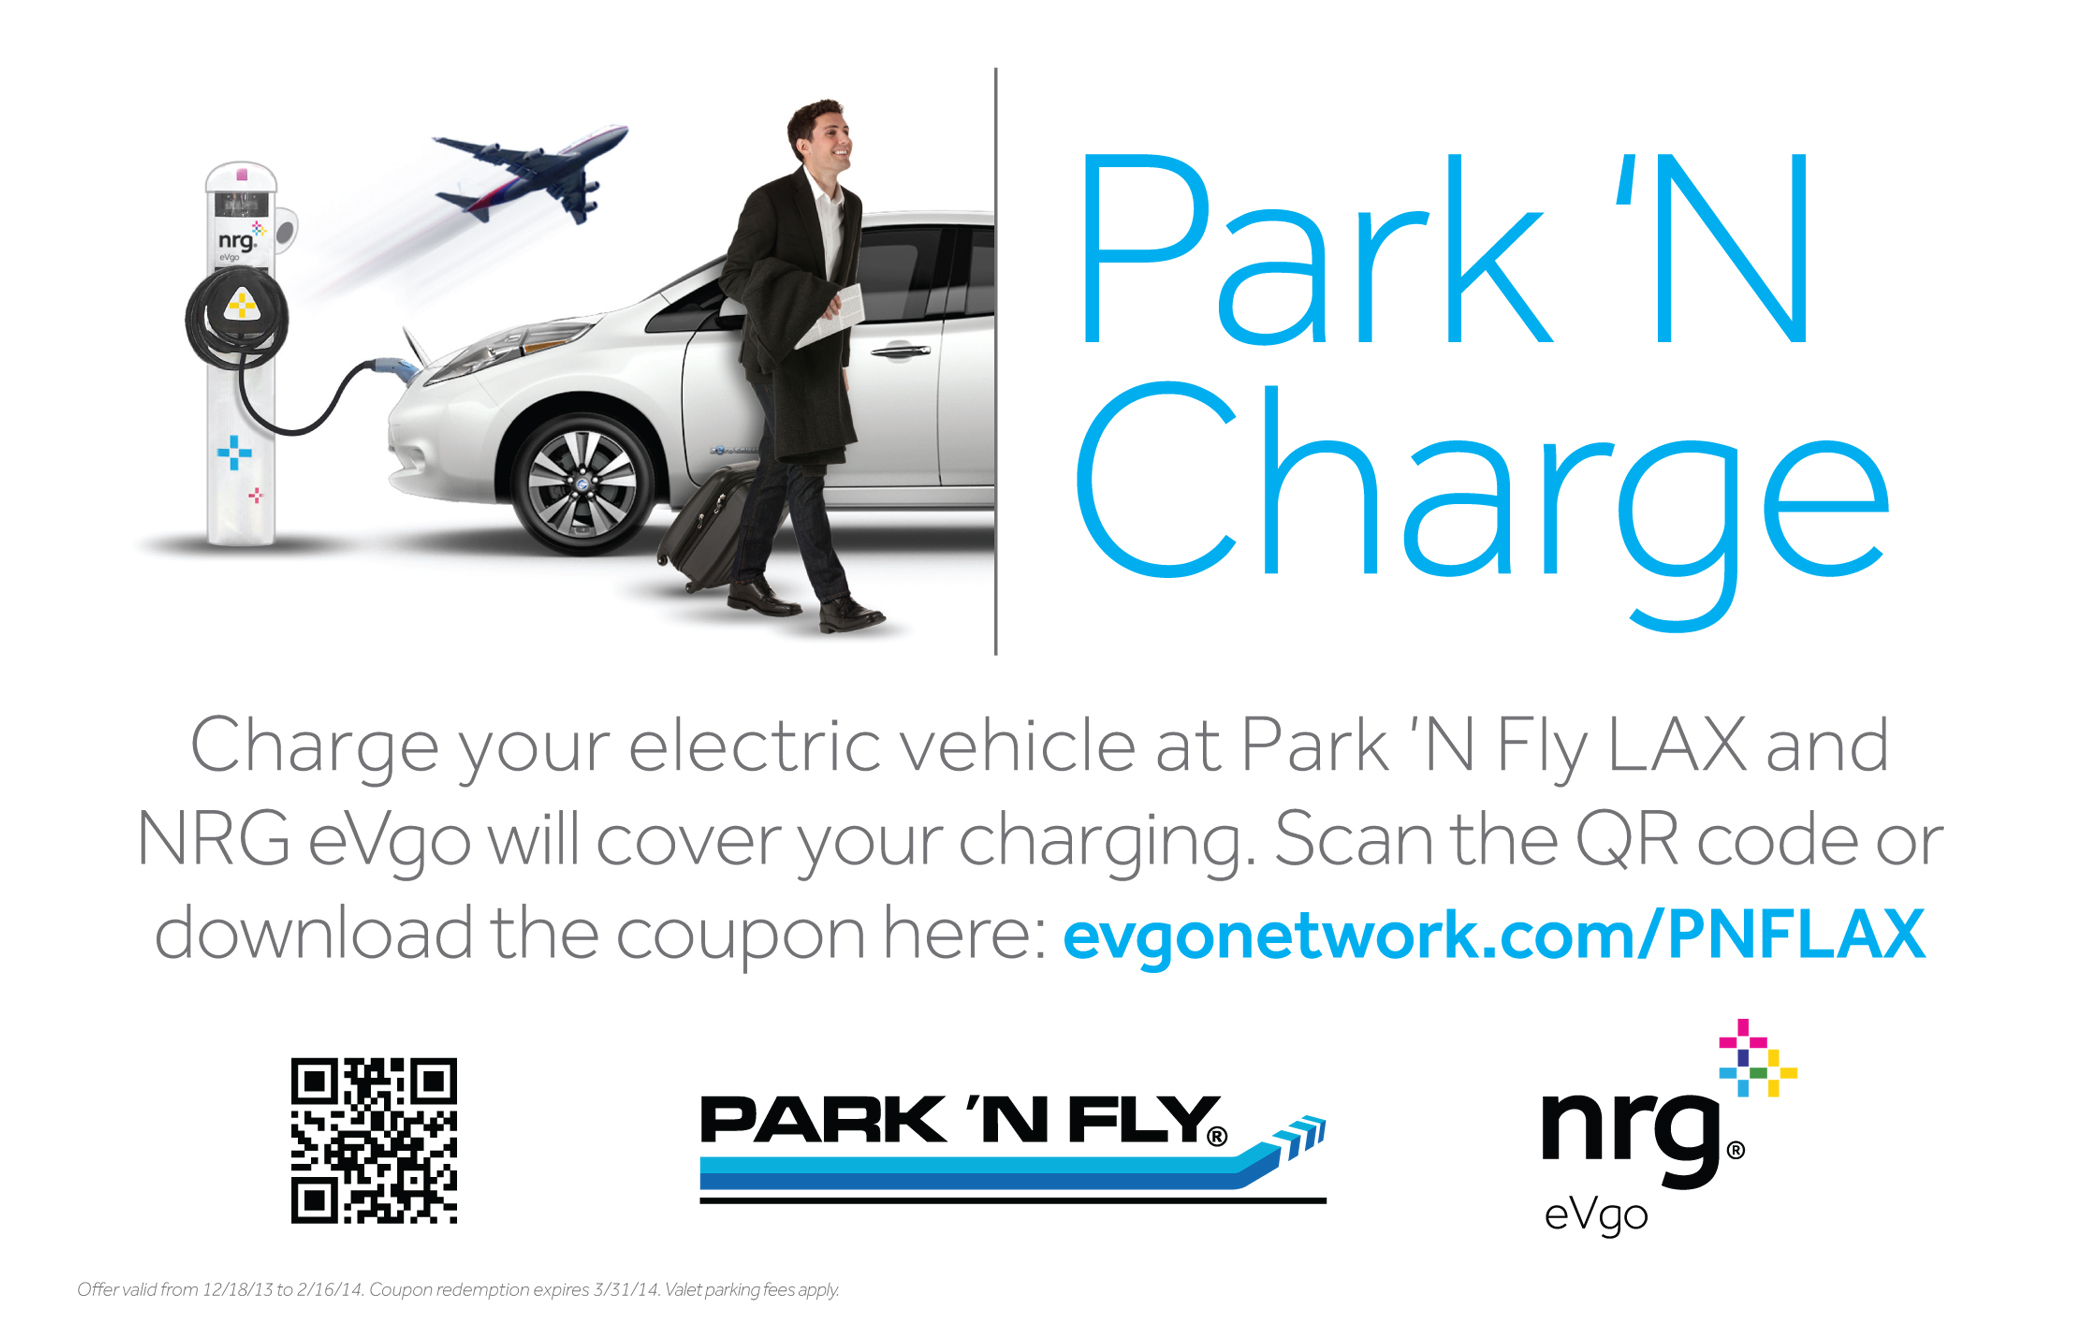 Nrg Evgo Offers Free Electric Car Charging At Park N Fly Lax This